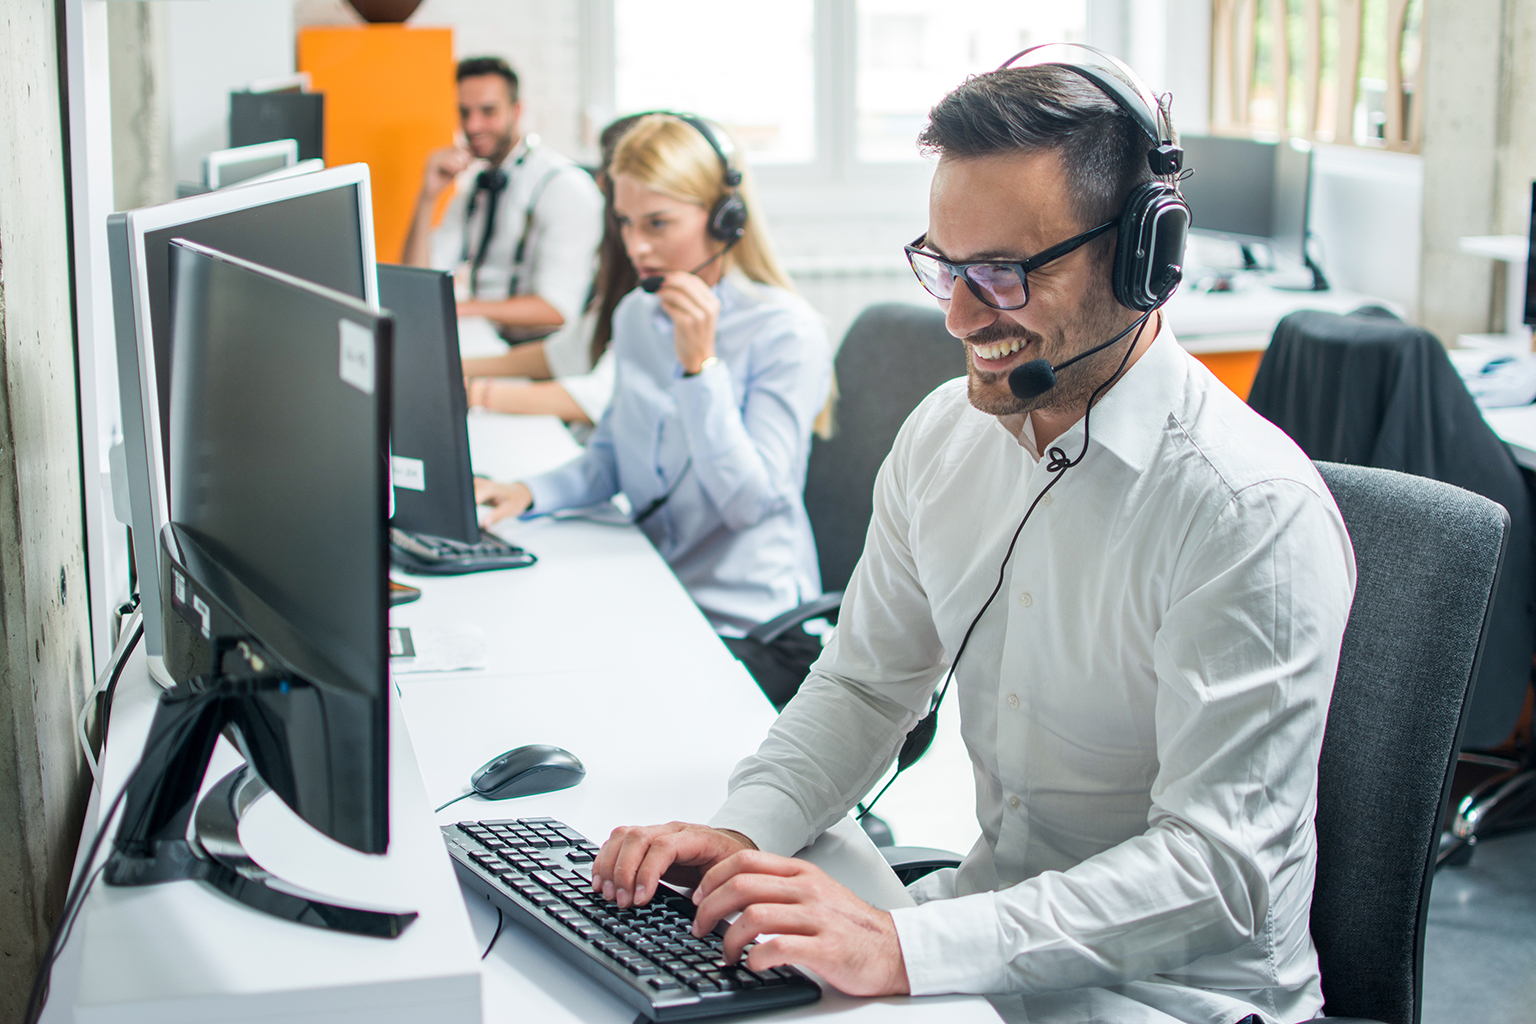 Call center staff working at computers, focus on gentleman in front on headset